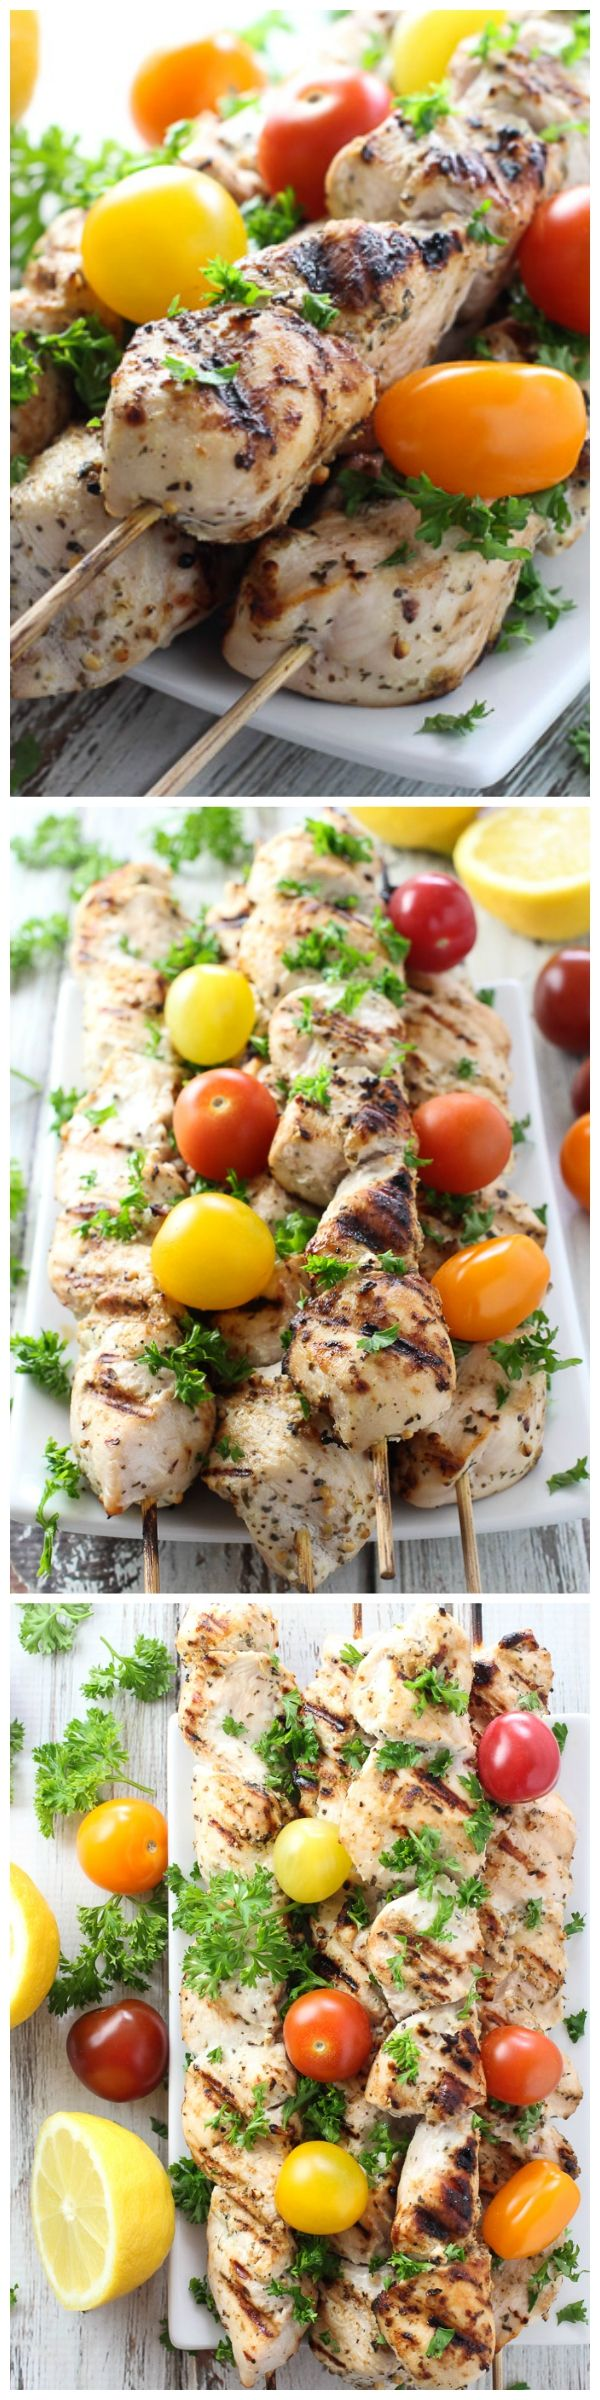 These Yogurt Marinated Chicken Kebabs can be cooked on a grill as well as in the oven.